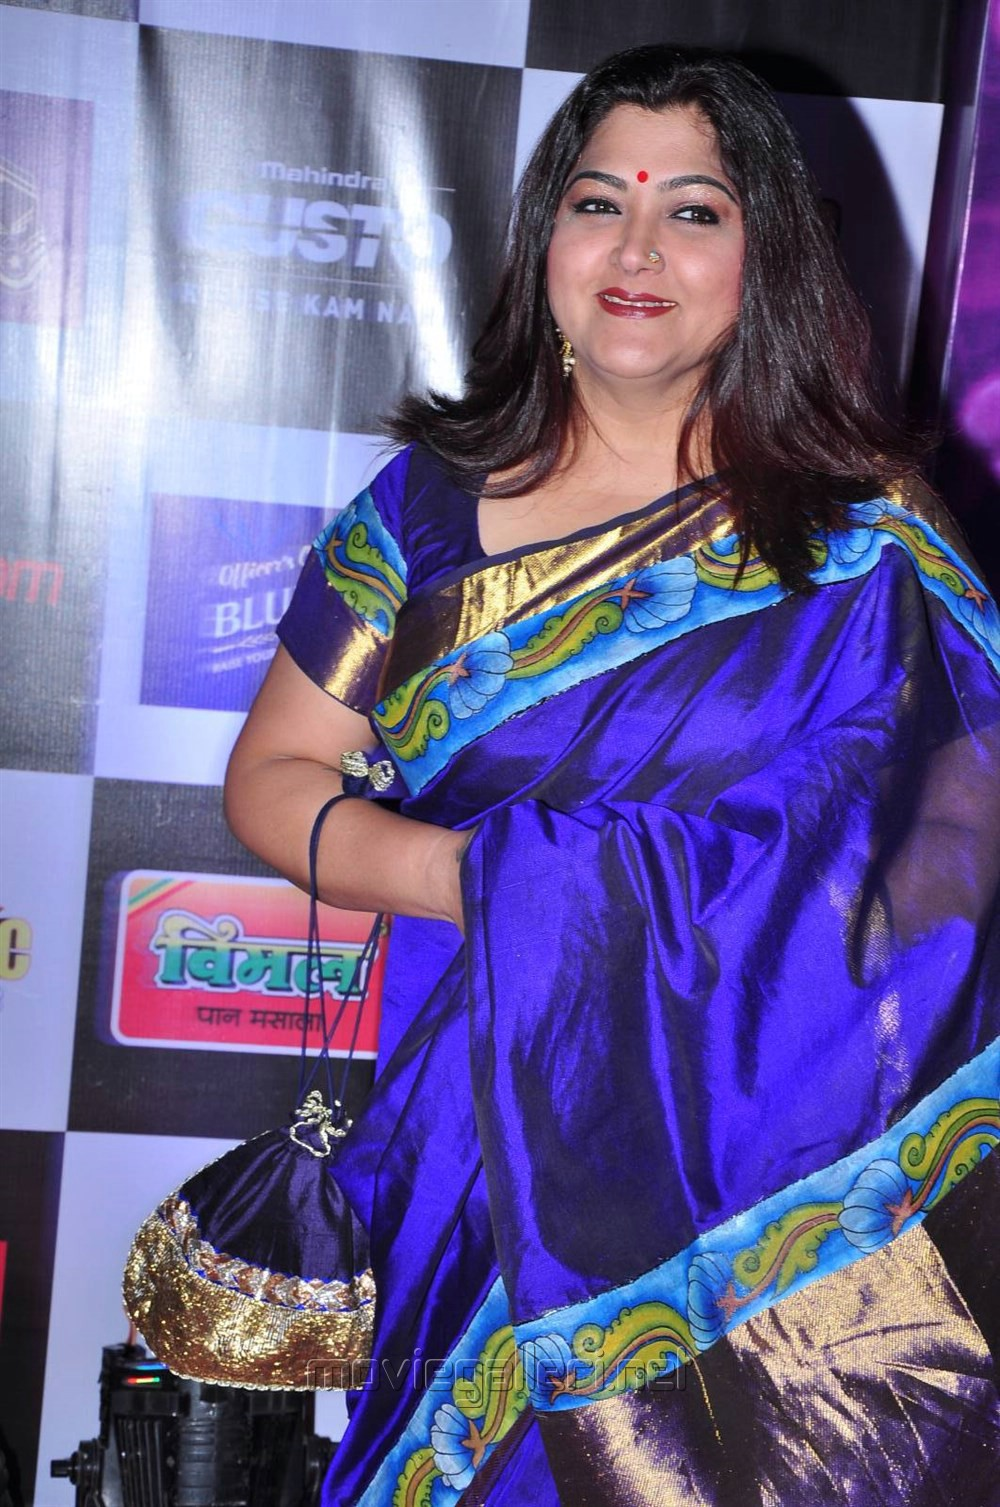 Kushboo Tamil Hot Simple picture 906279   actress kushboo at mirchi music awards 2014 red